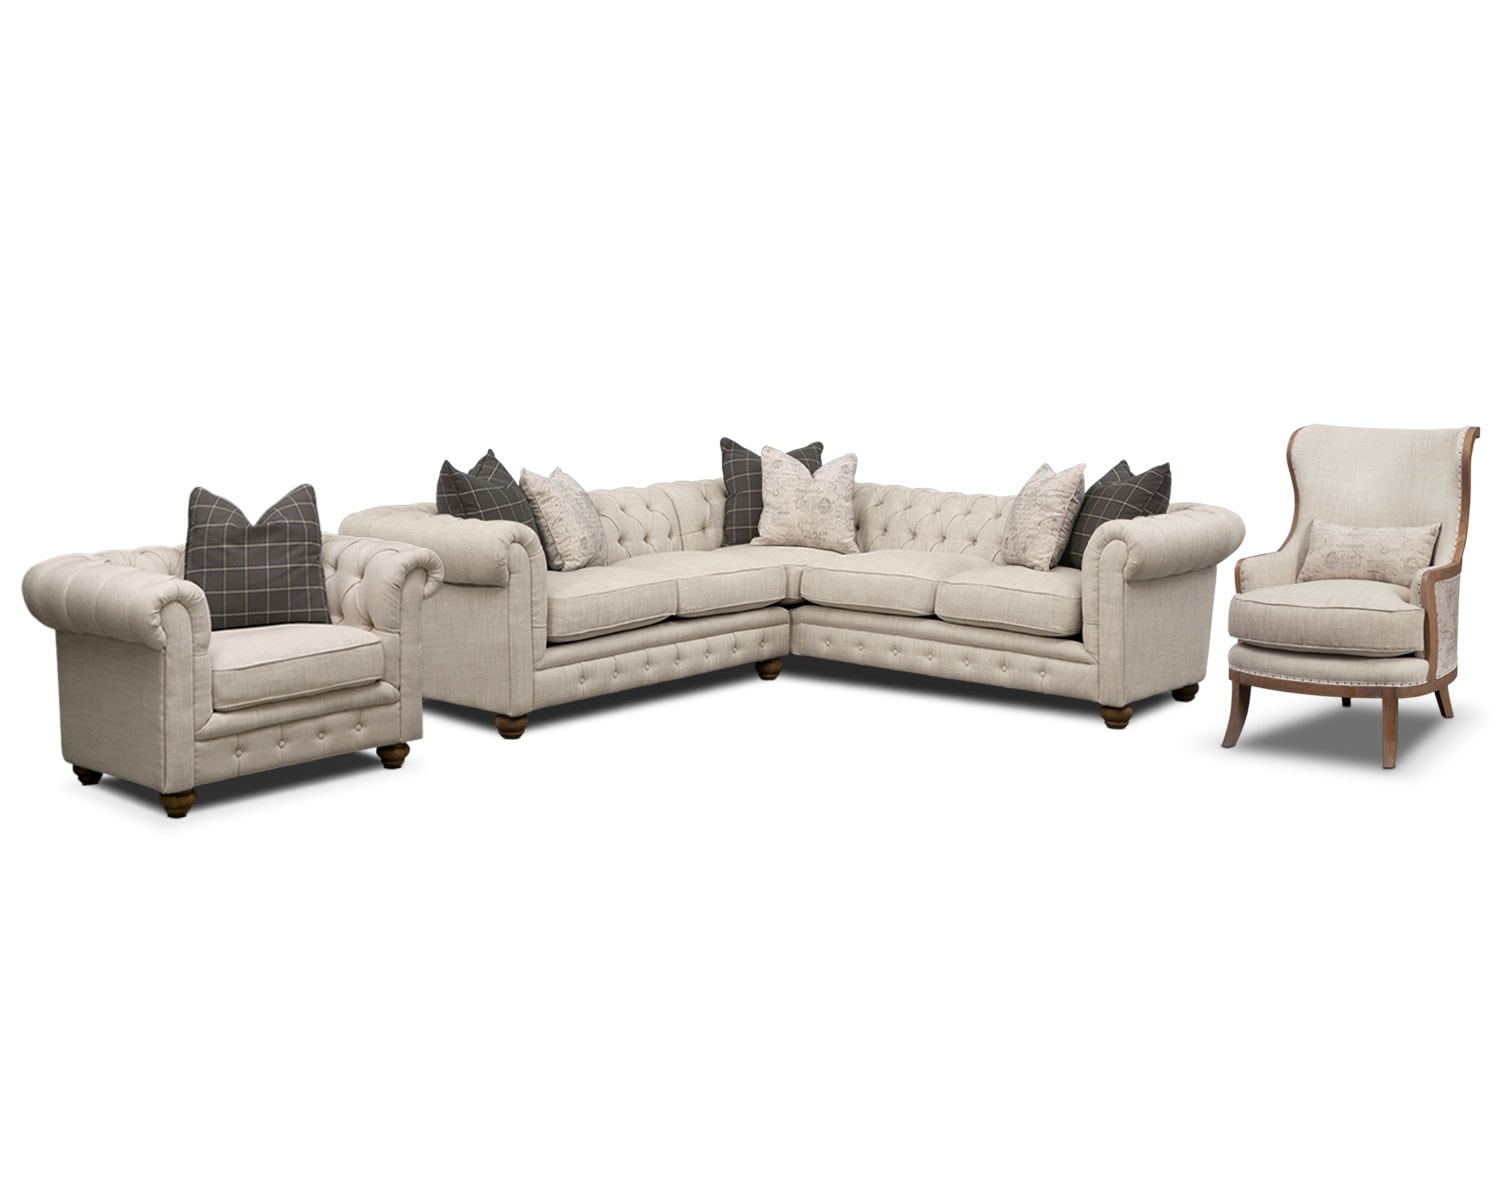 The Madeline Beige Sectional Collection